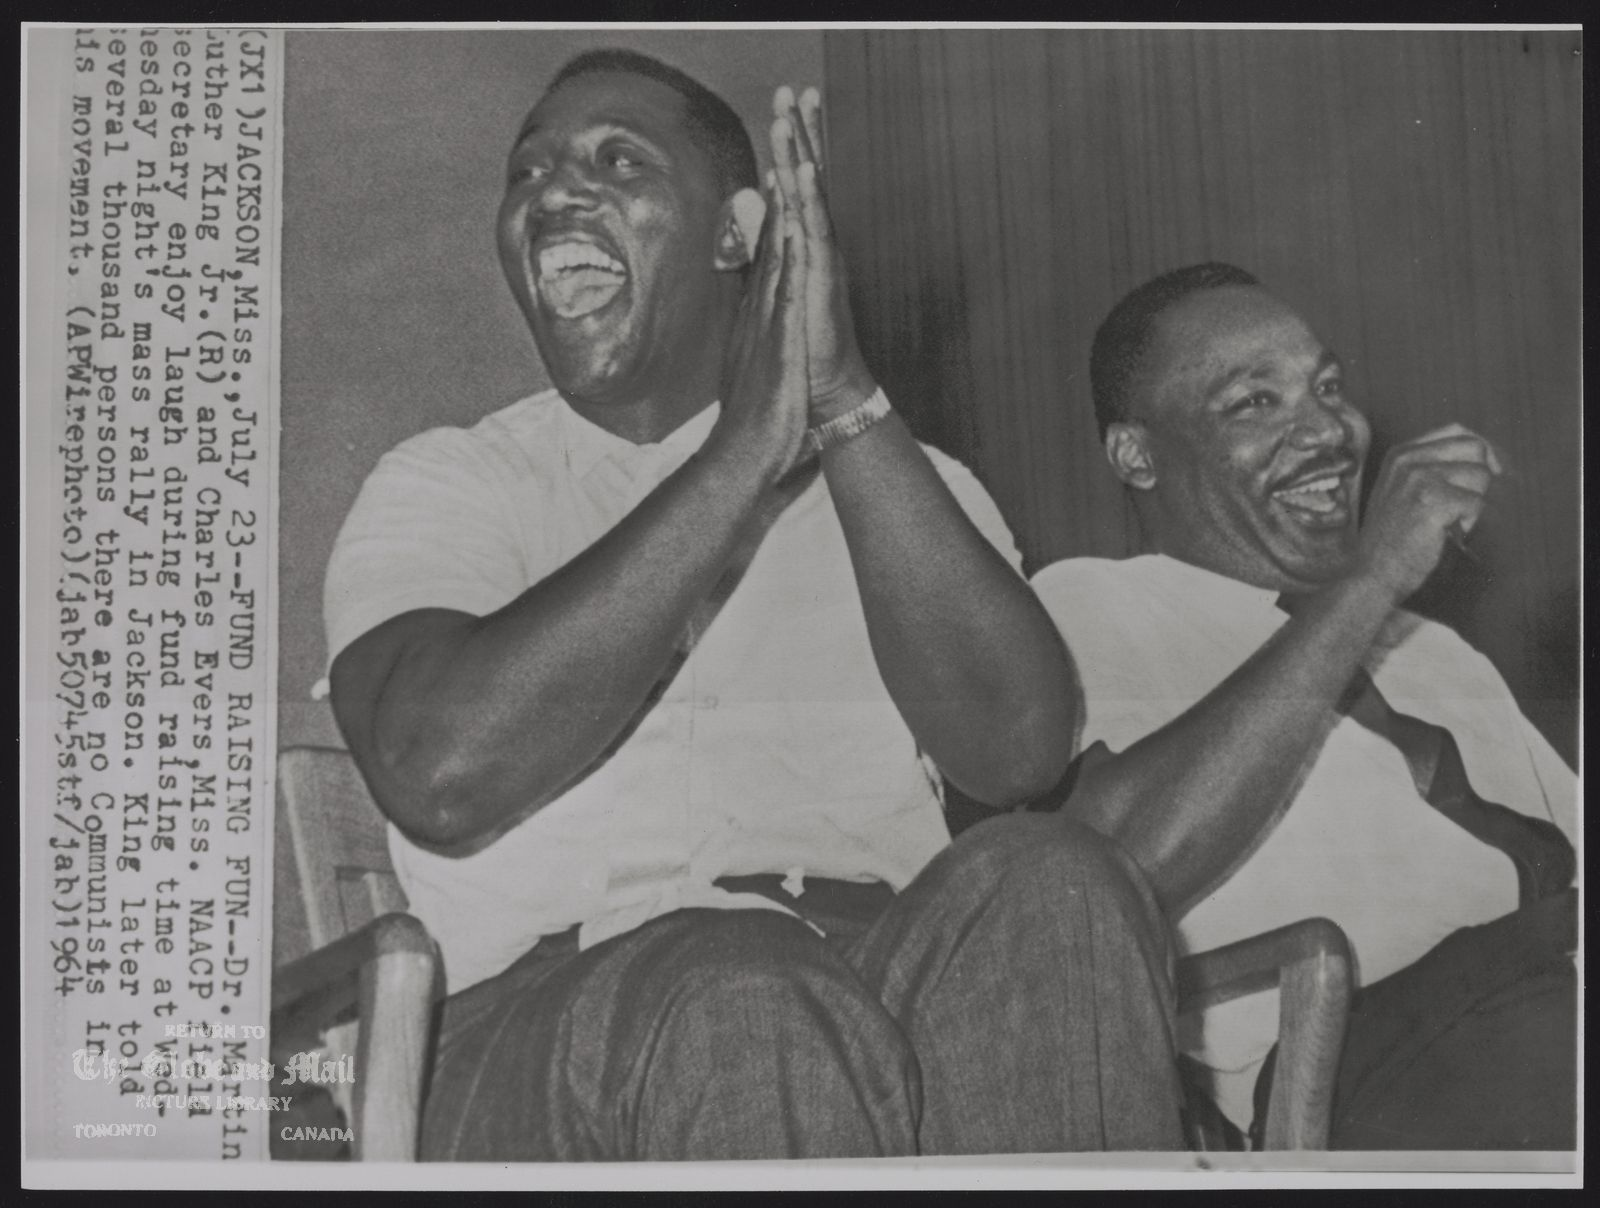 CHARLES EVERS U.S.A. NAACP exec. (JX10) JACKSON,Miss.,July 23--FOUND RAISING FUN--Dr. Martin Luther King Jr.(R) and Charles Evers, Miss. NAACP field Secretary enjoy laugh during fund raising time at Wednesday night's mass rally in Jackson. King later told serveral thousand persons there are no Communists in his movement, 1964